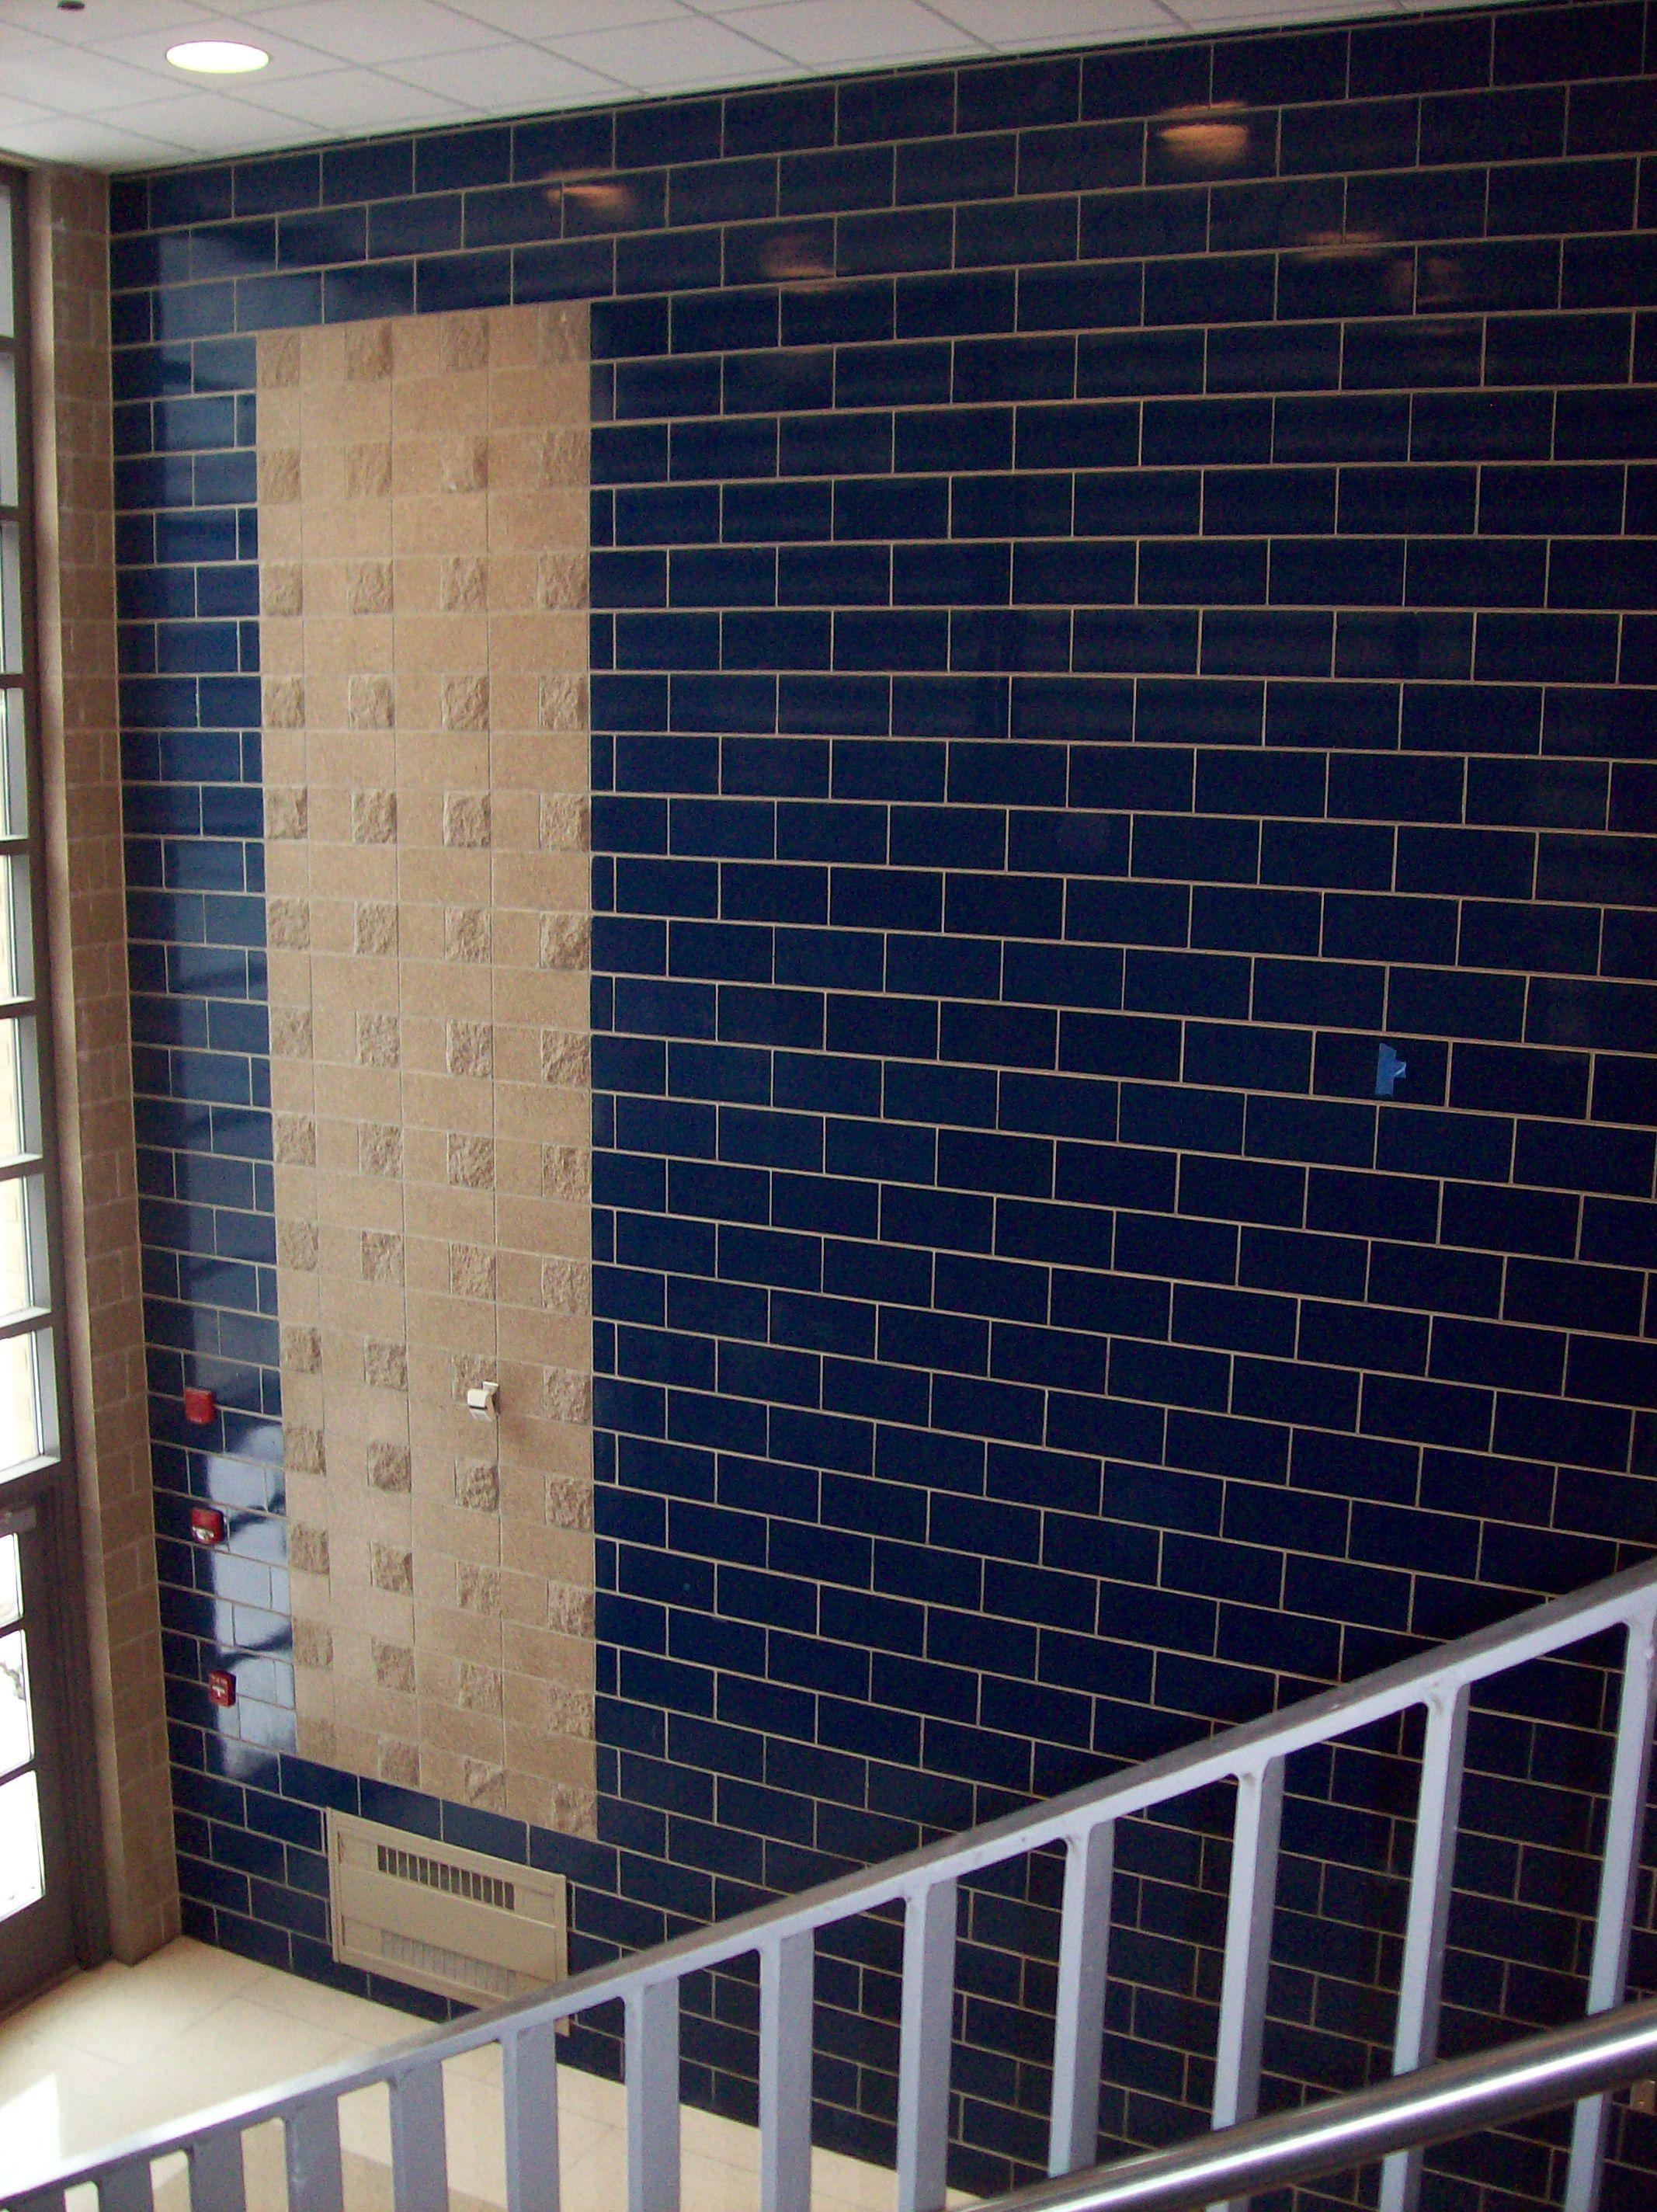 Interior Wall System With Structural Glazed Tile 2200a Cobalt Blue 8w Series 8x16